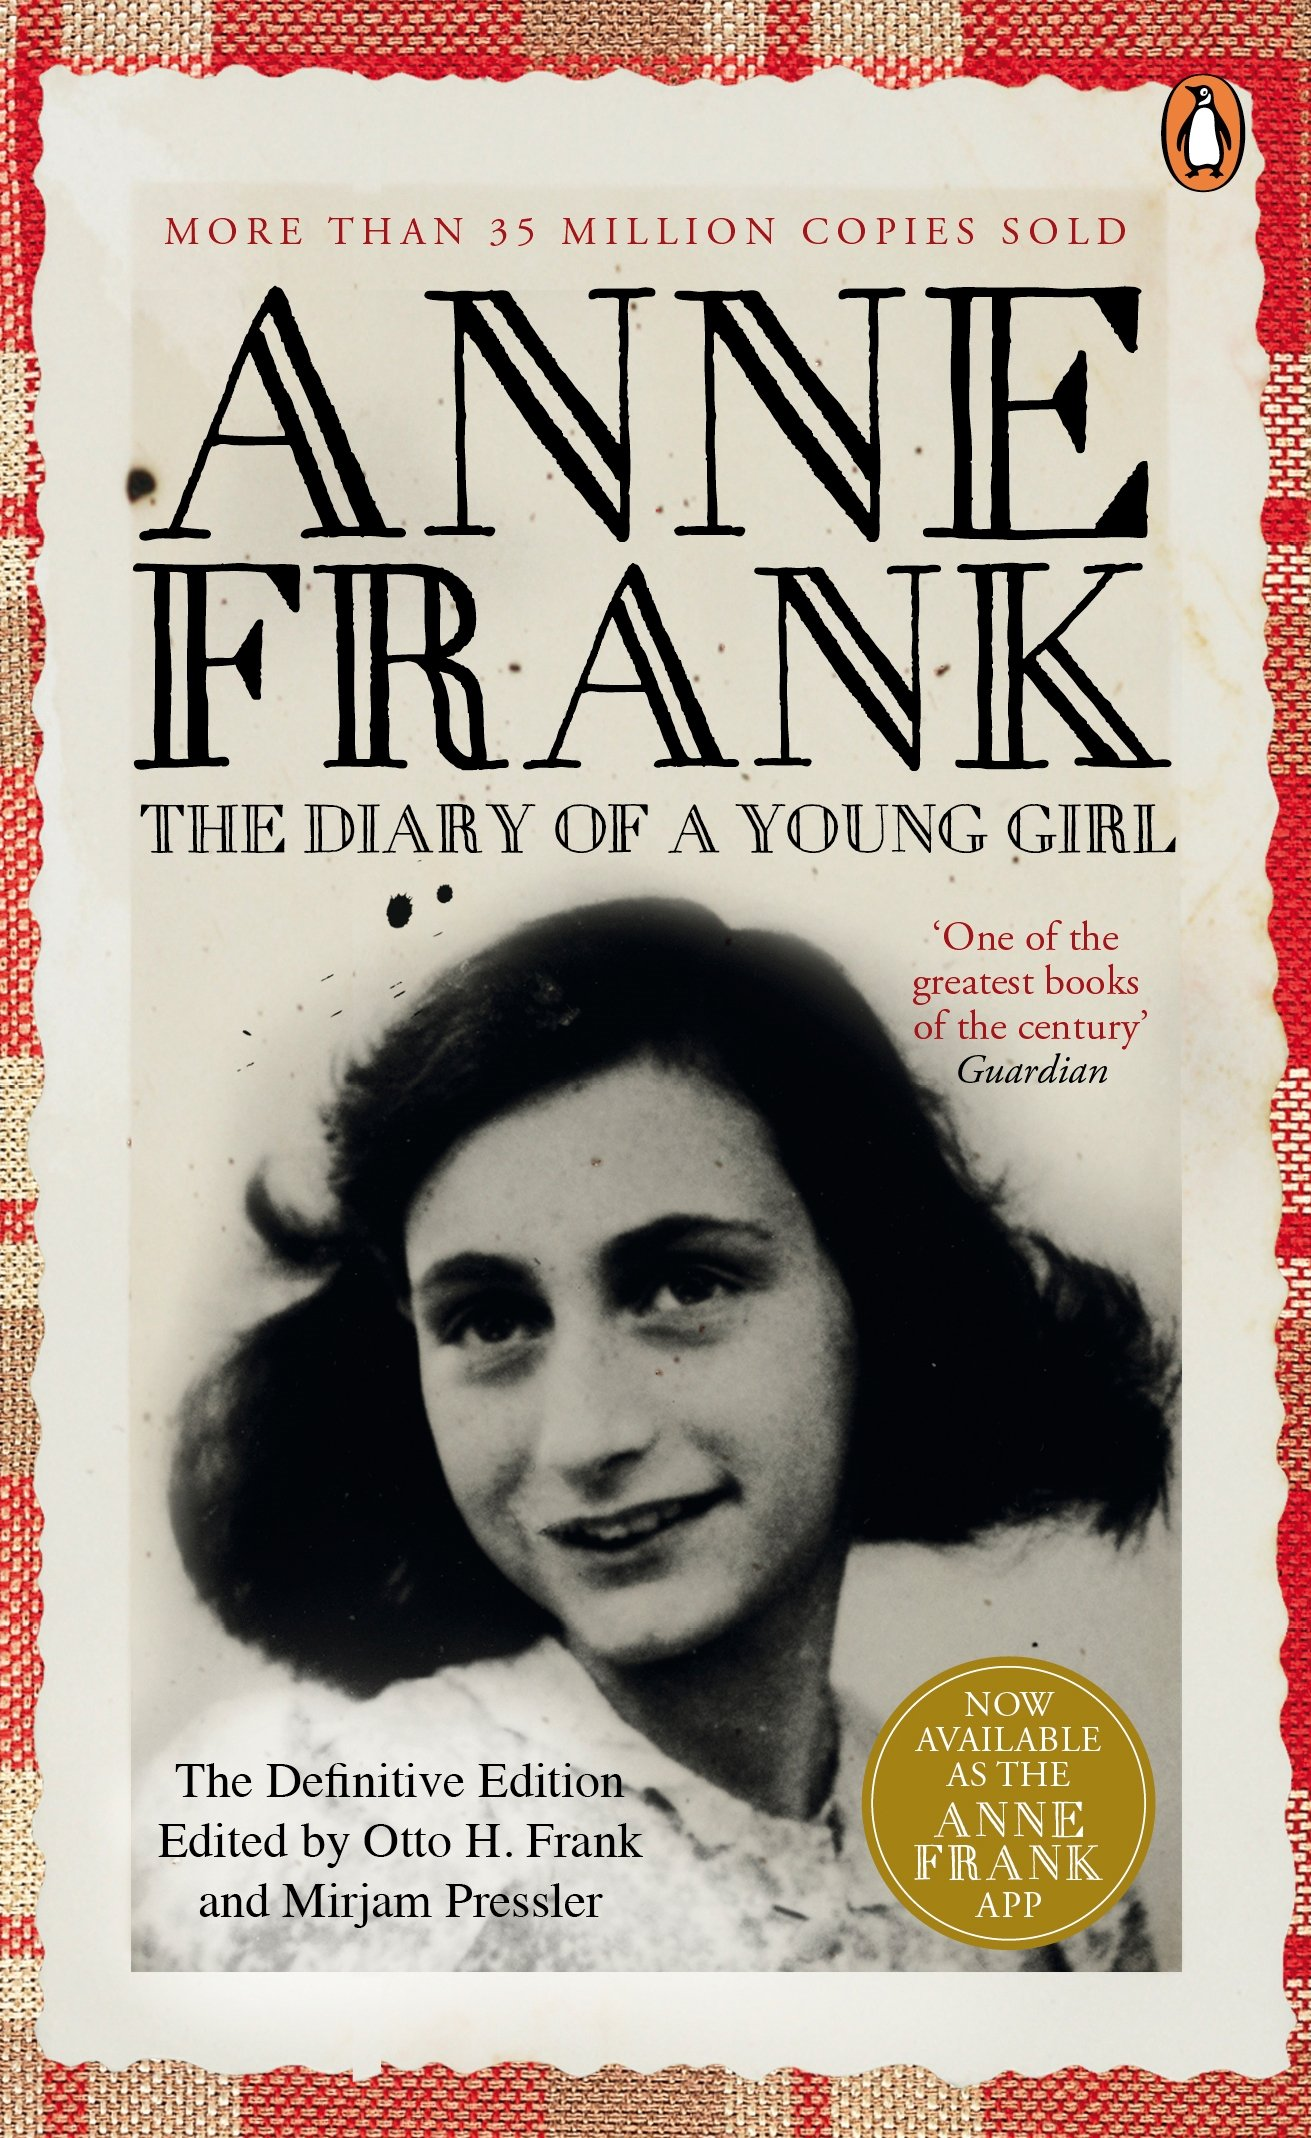 The Diary of a Young Girl: The Definitive Edition: Amazon.co.uk ...